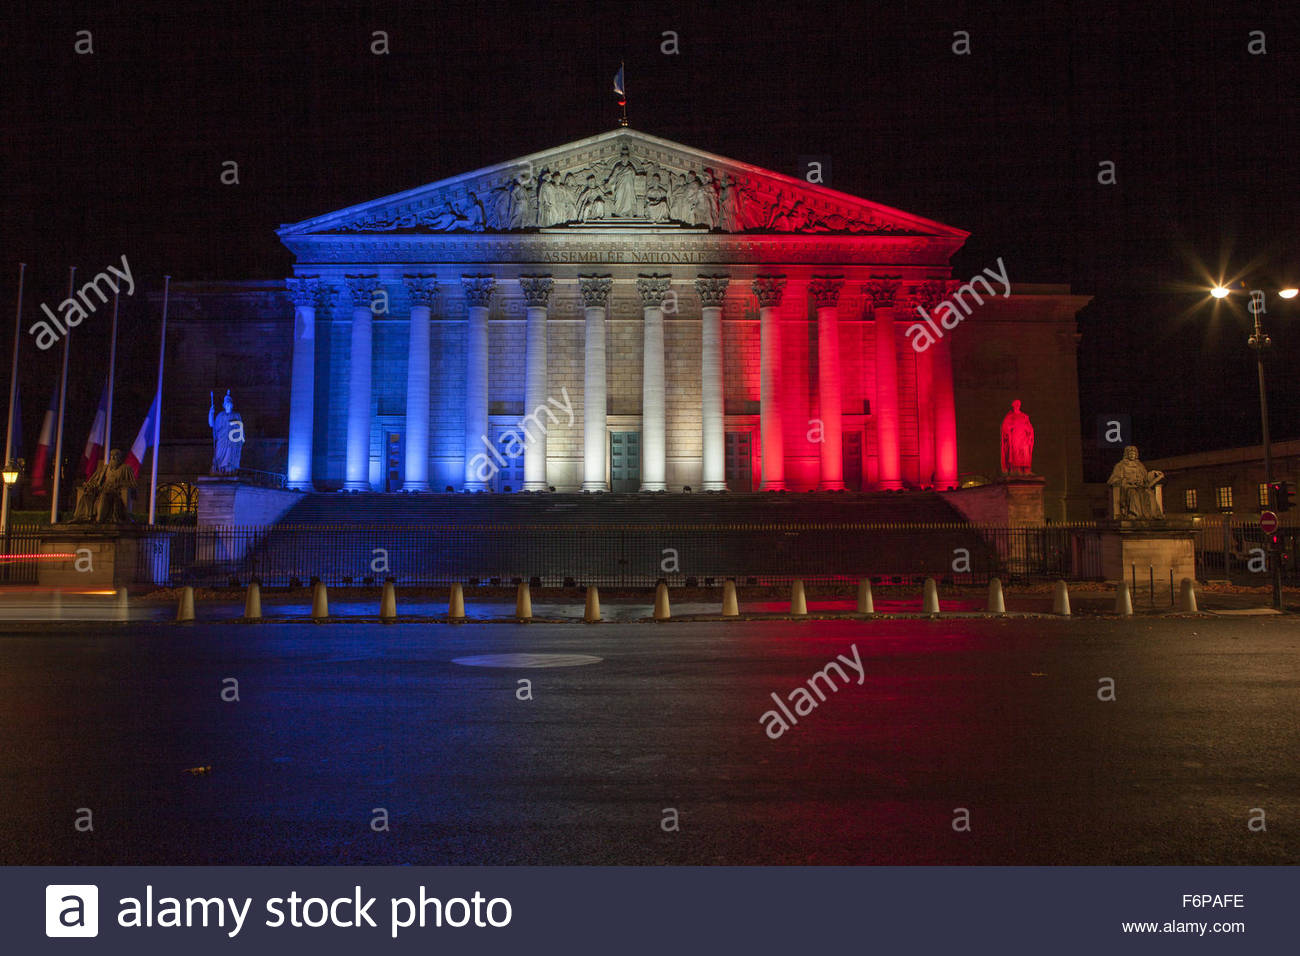 Paris, France. November 18th, 2015. FRANCE, Paris: National Assembly is seen illuminated with the colors of French - Stock Image